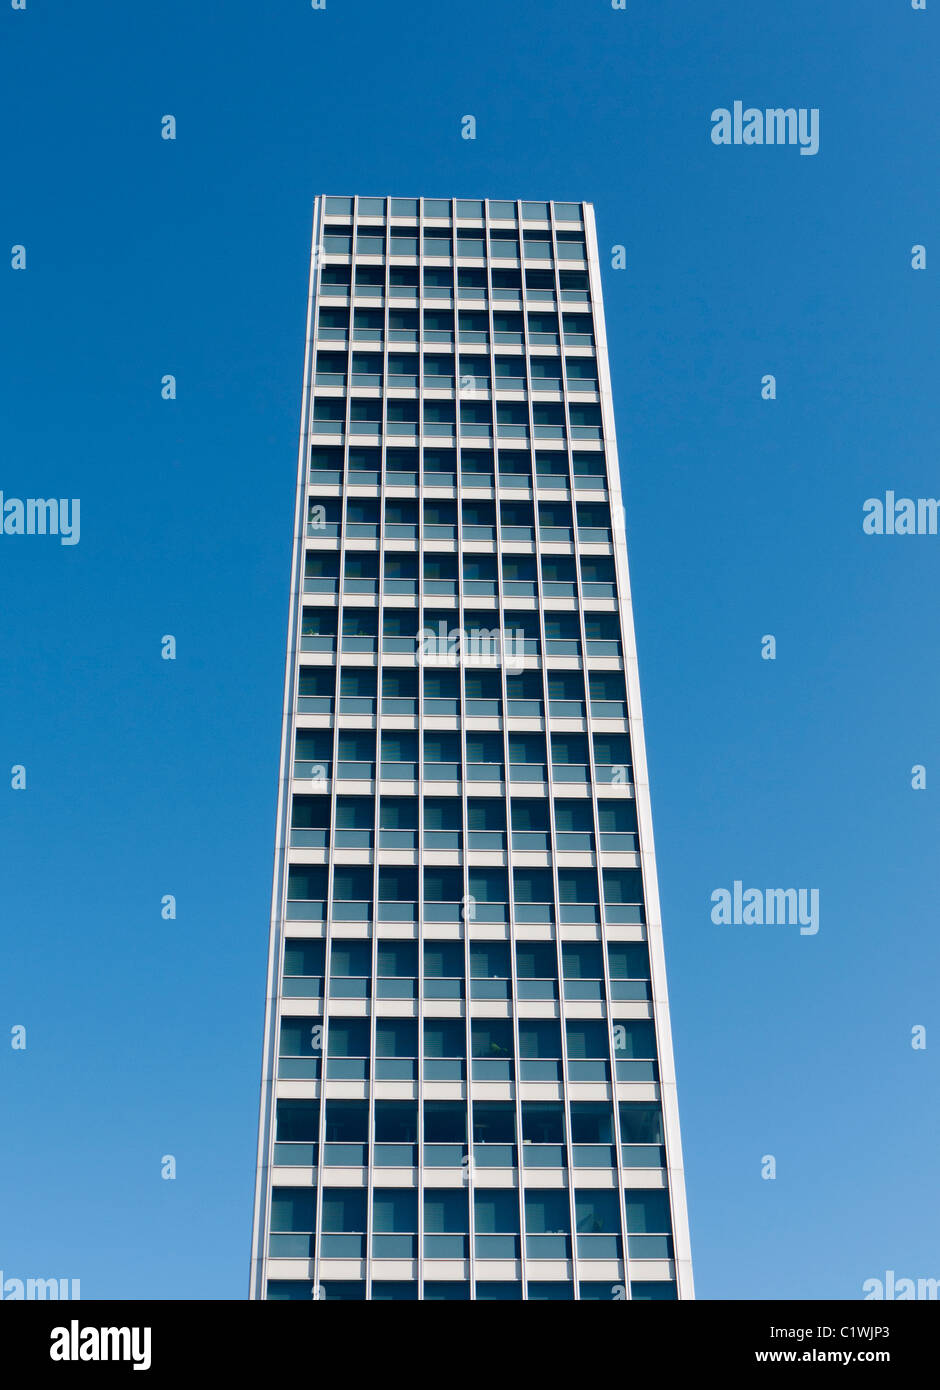 Modern high-rise office building in Dusseldorf Germany - Stock Image